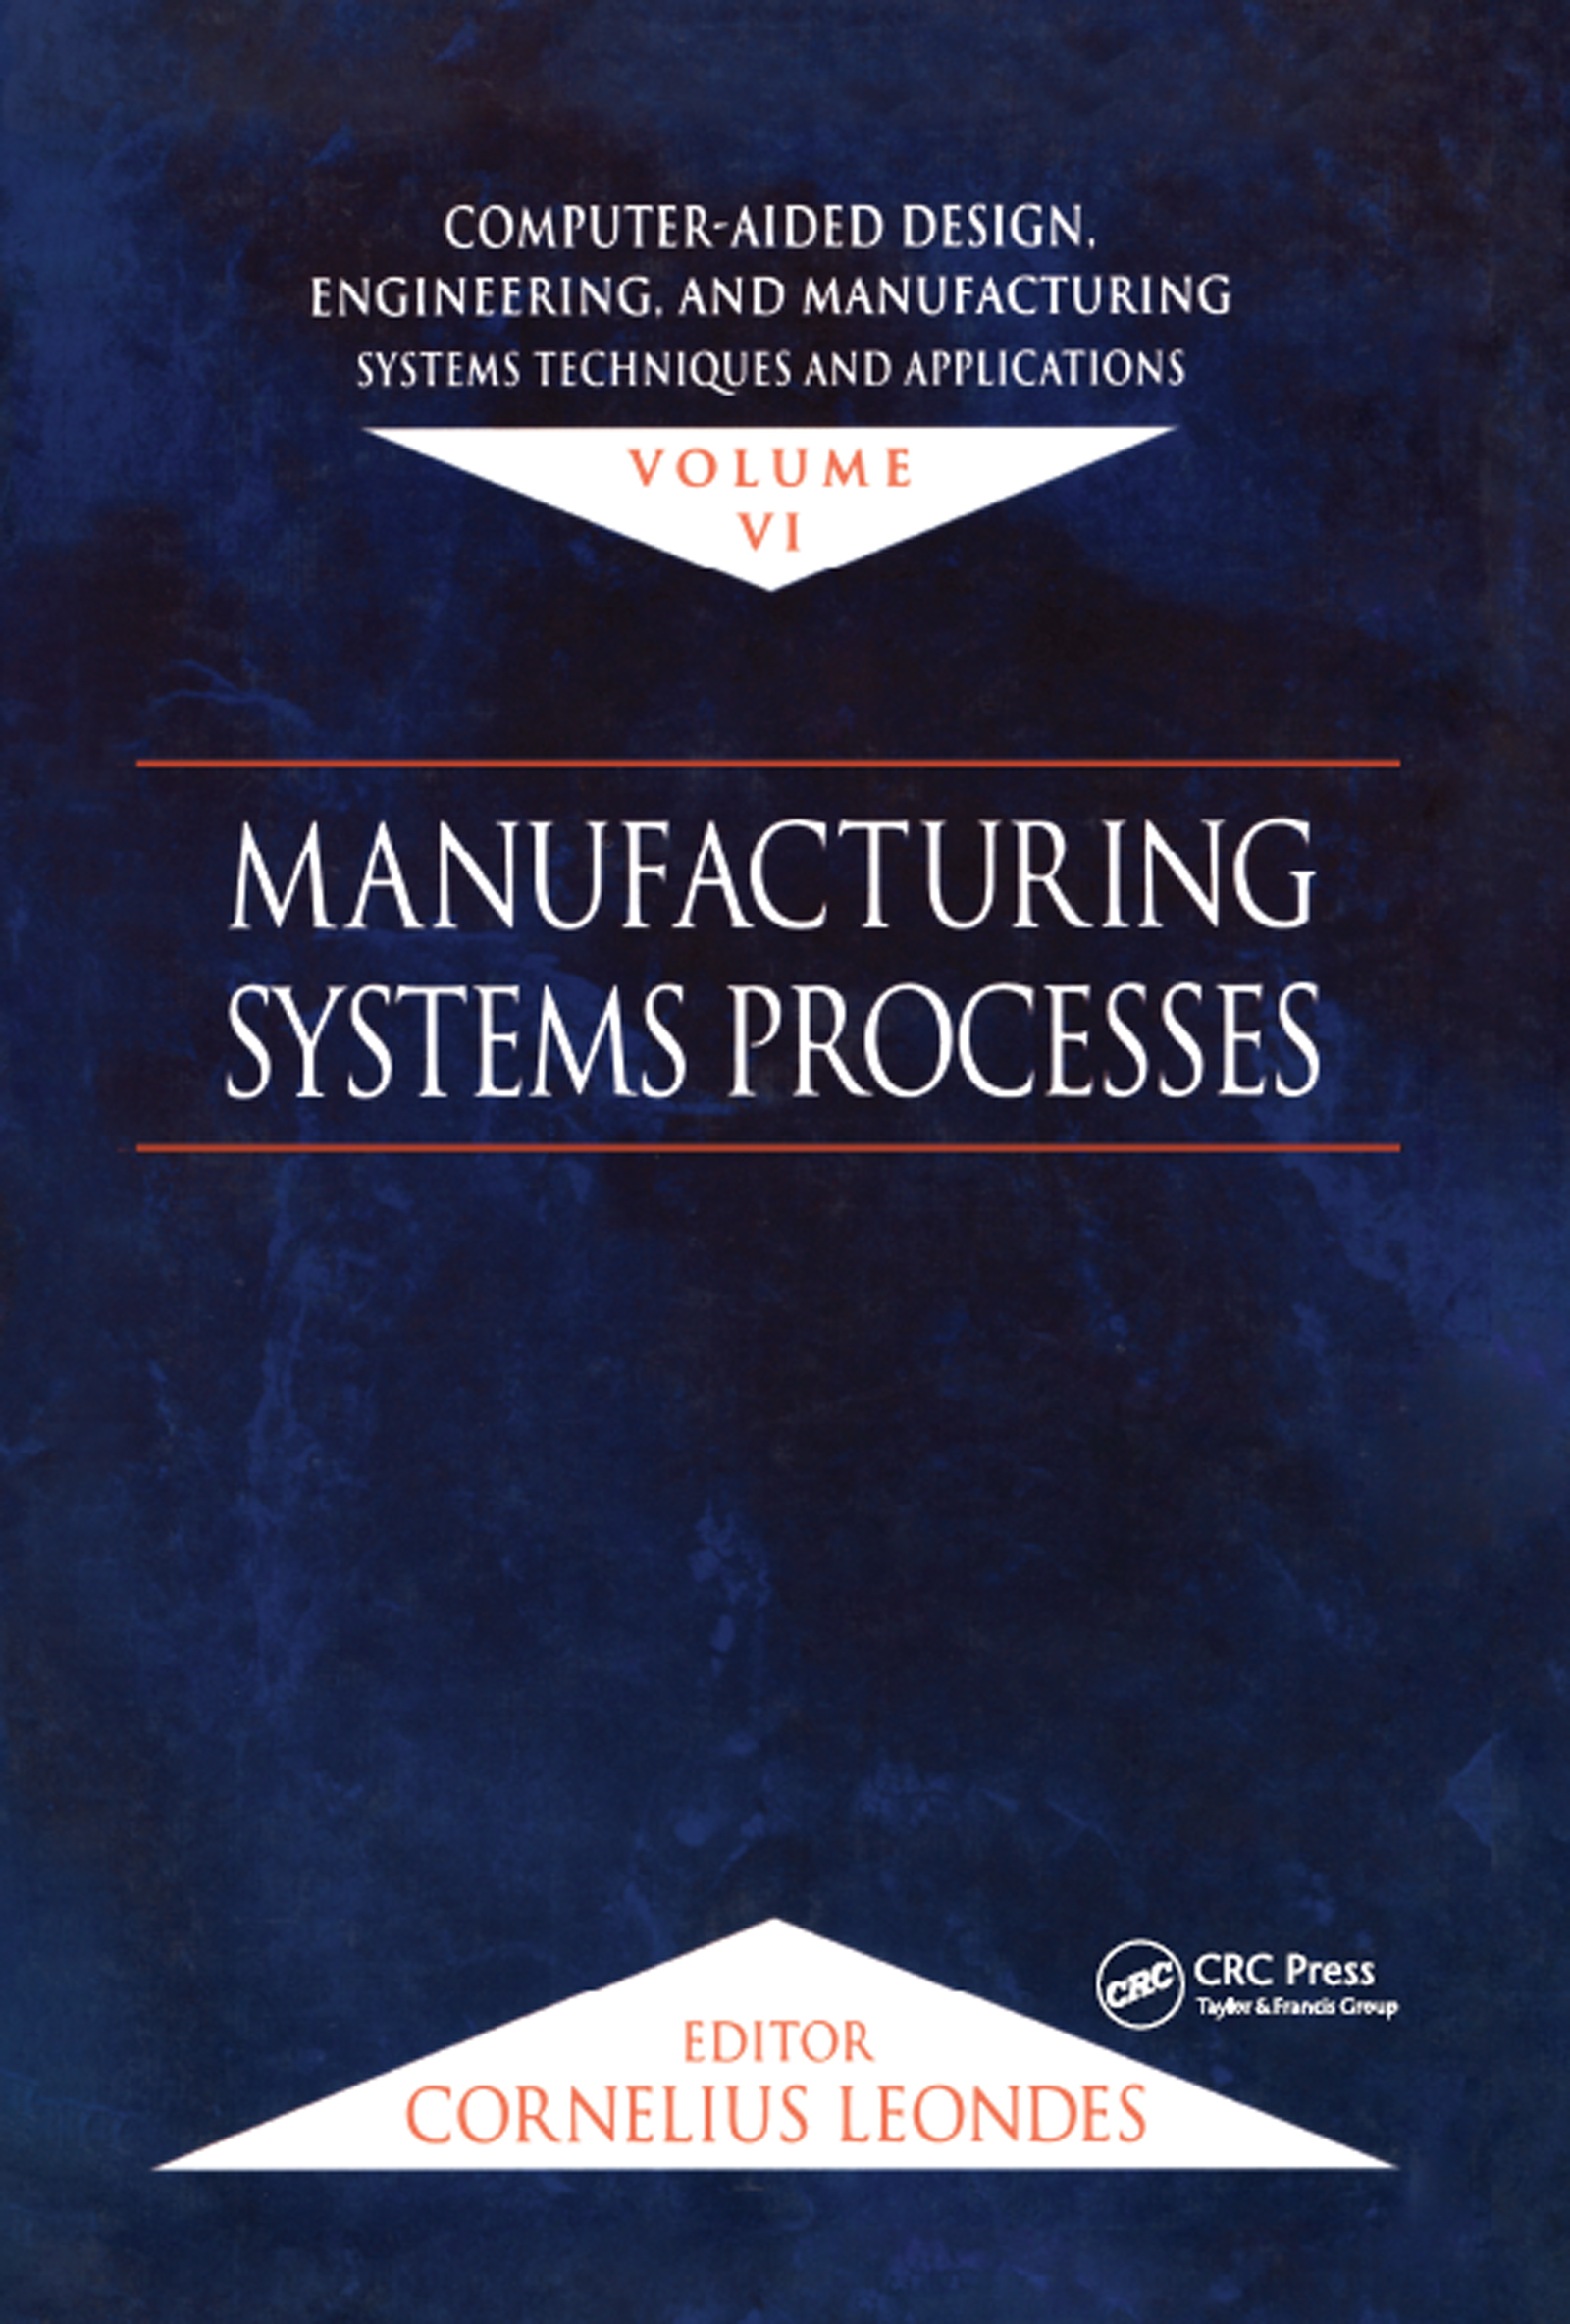 Computer-Aided Design, Engineering, and Manufacturing: Systems Techniques and Applications, Volume VI, Manufacturing Systems Processes, 1st Edition (Hardback) book cover